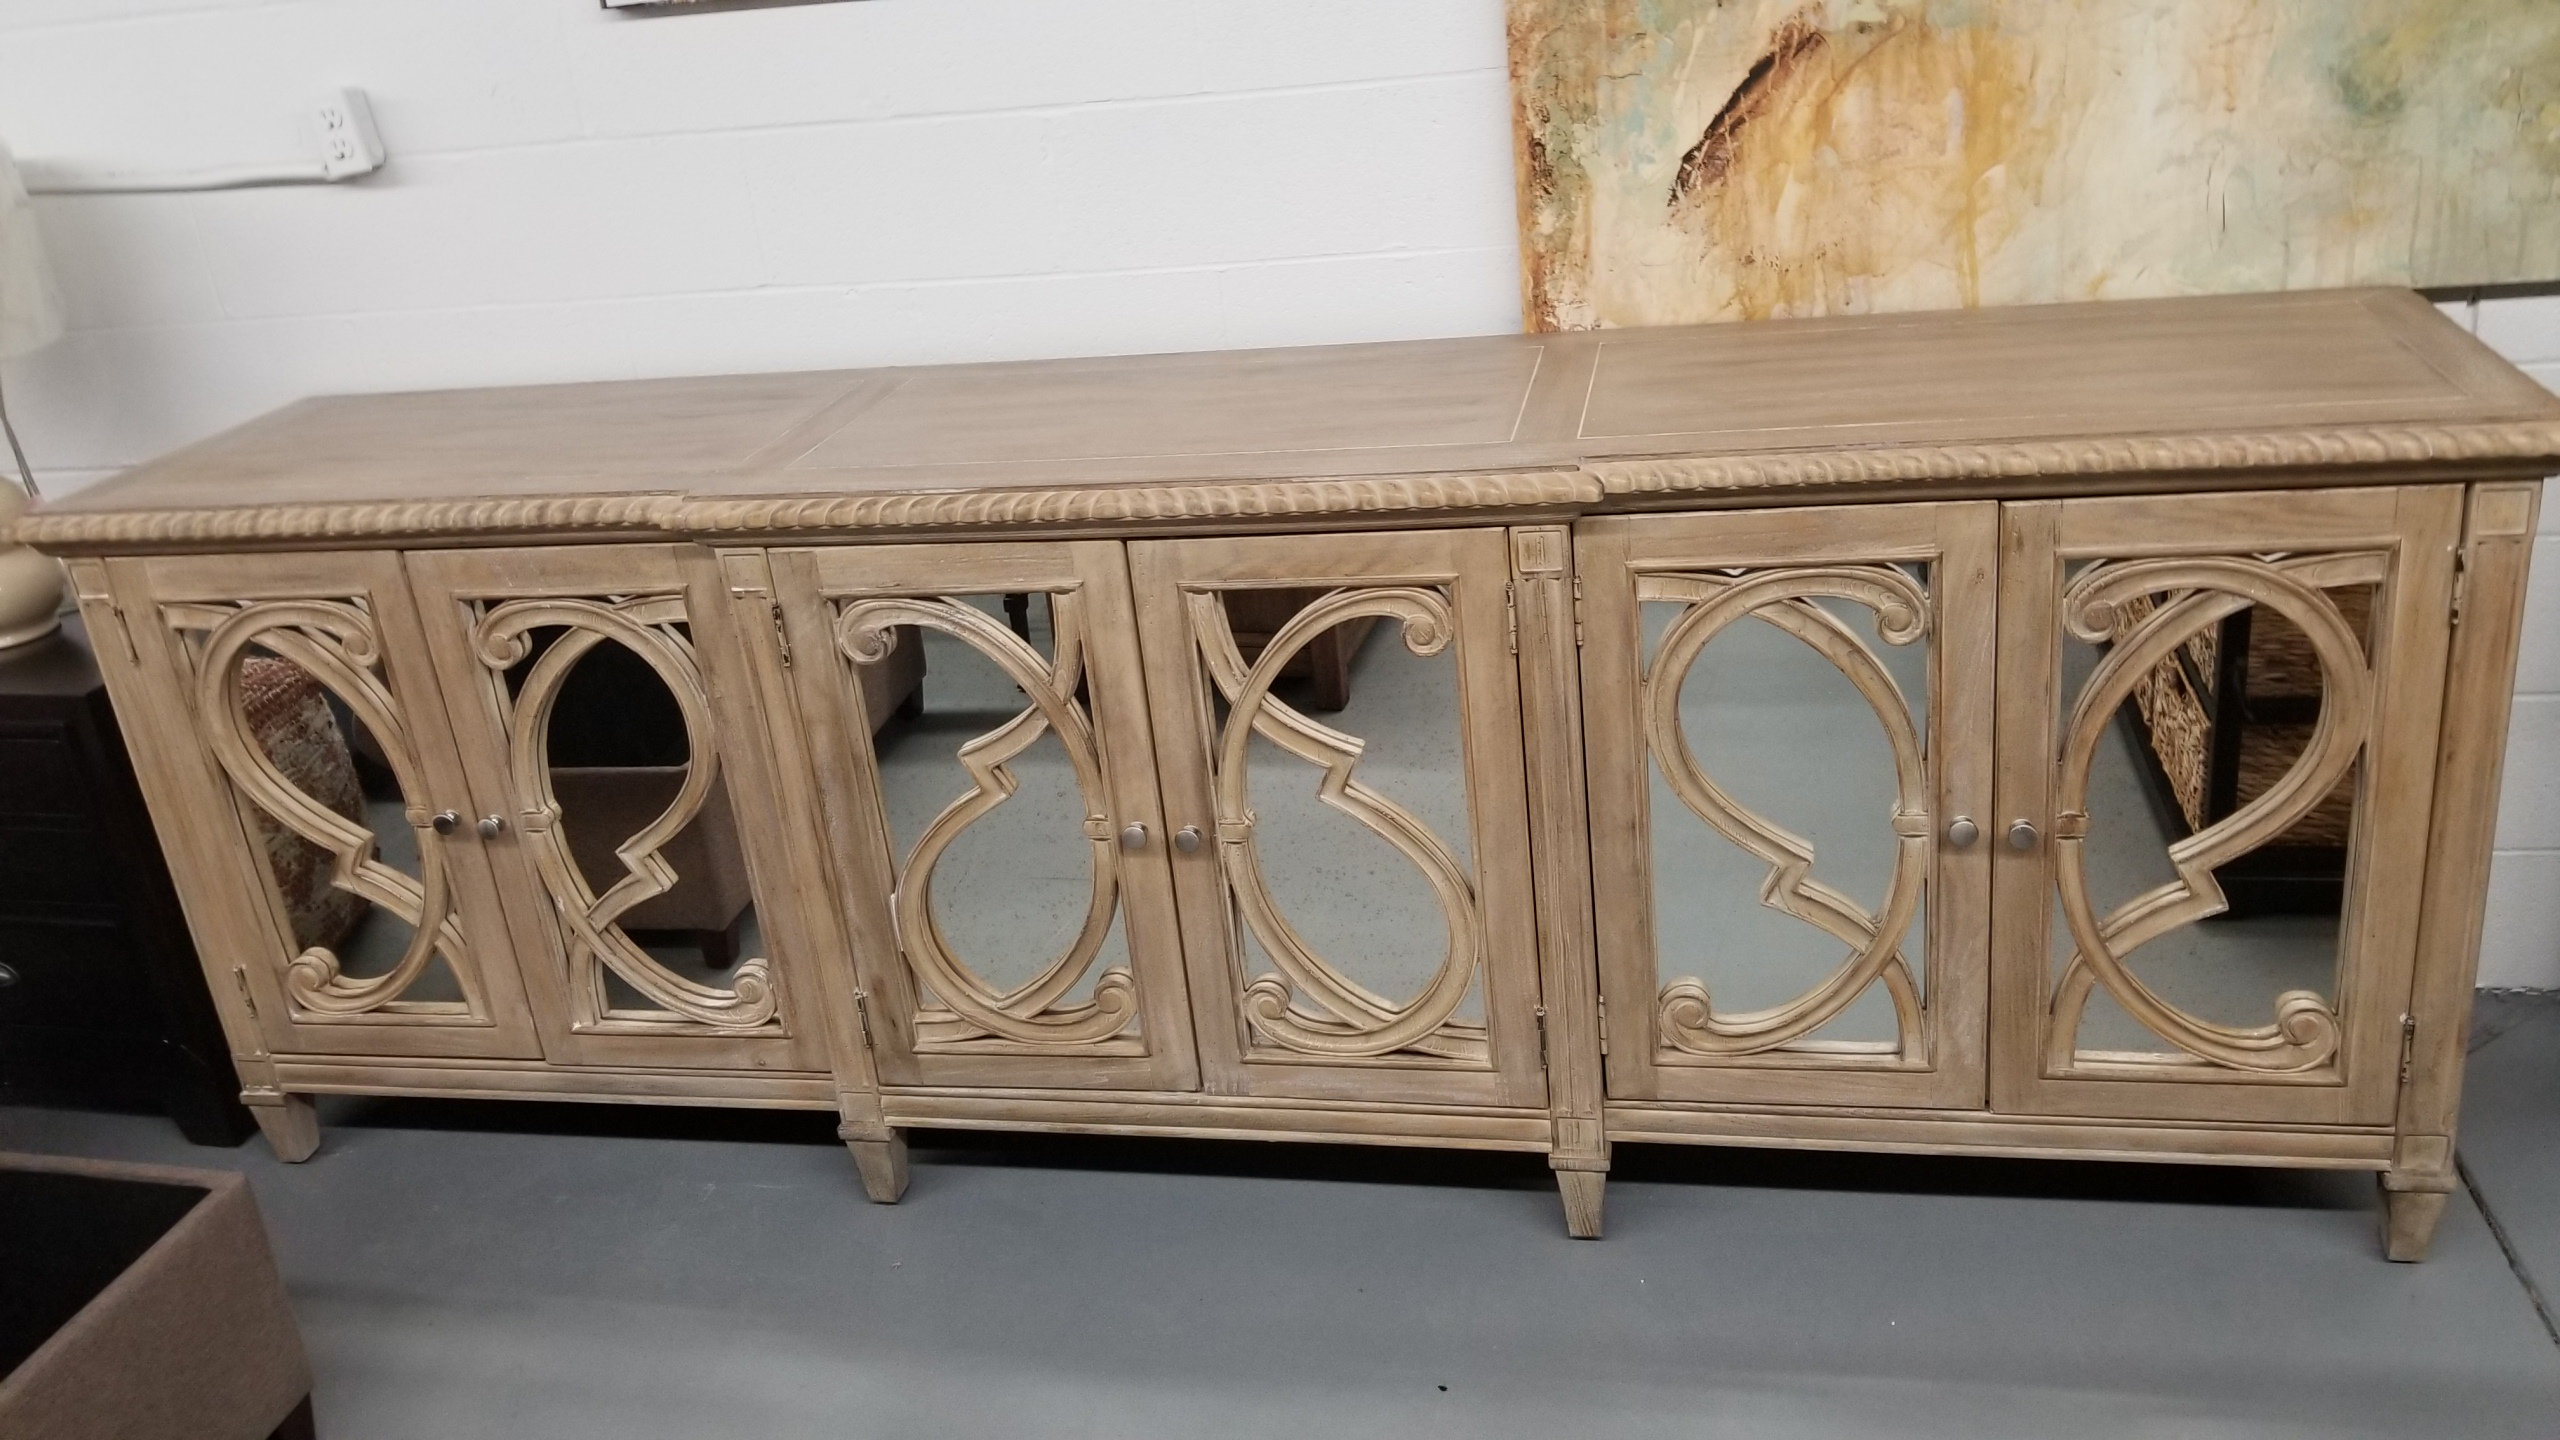 Solana Sideboardhooker Furniture | Sjbhomedecor Within Newest Solana Sideboards (#18 of 20)